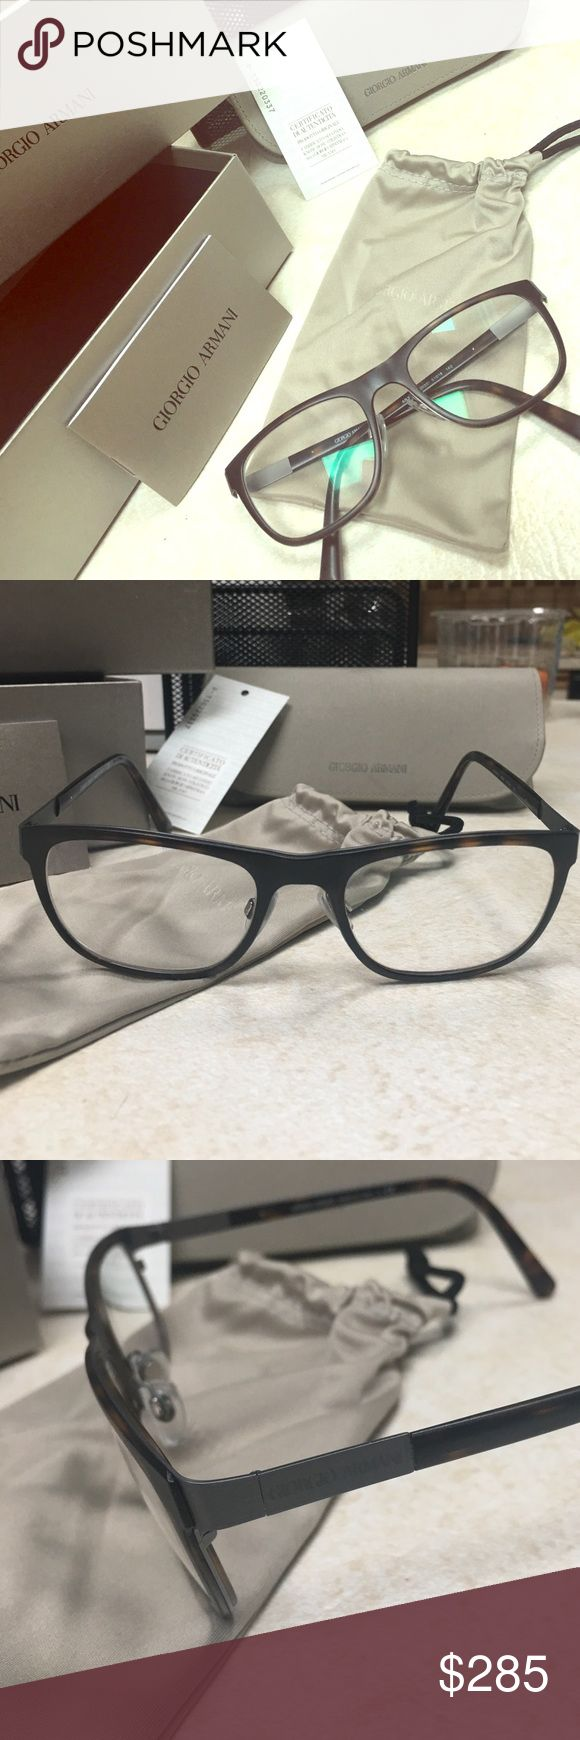 ☘️Shamrock Sale!!!!☘️Giorgio Armani Prescr Glasses Never worn, comes with original case, pouch, box, certificate of authenticity. Made in Italy. Style AR5012. Purchased at Cohens Optical in Freehold, NJ. Color is a matte brown tortoise front with some small detailing of brushed gunmetal on the sides. Reads Giorgio Armani on both temples. Prescription is -.25 for both eyes. Lenses are removable of course so that you can add your own to suit. Purchased two pair on the same day & just don't…